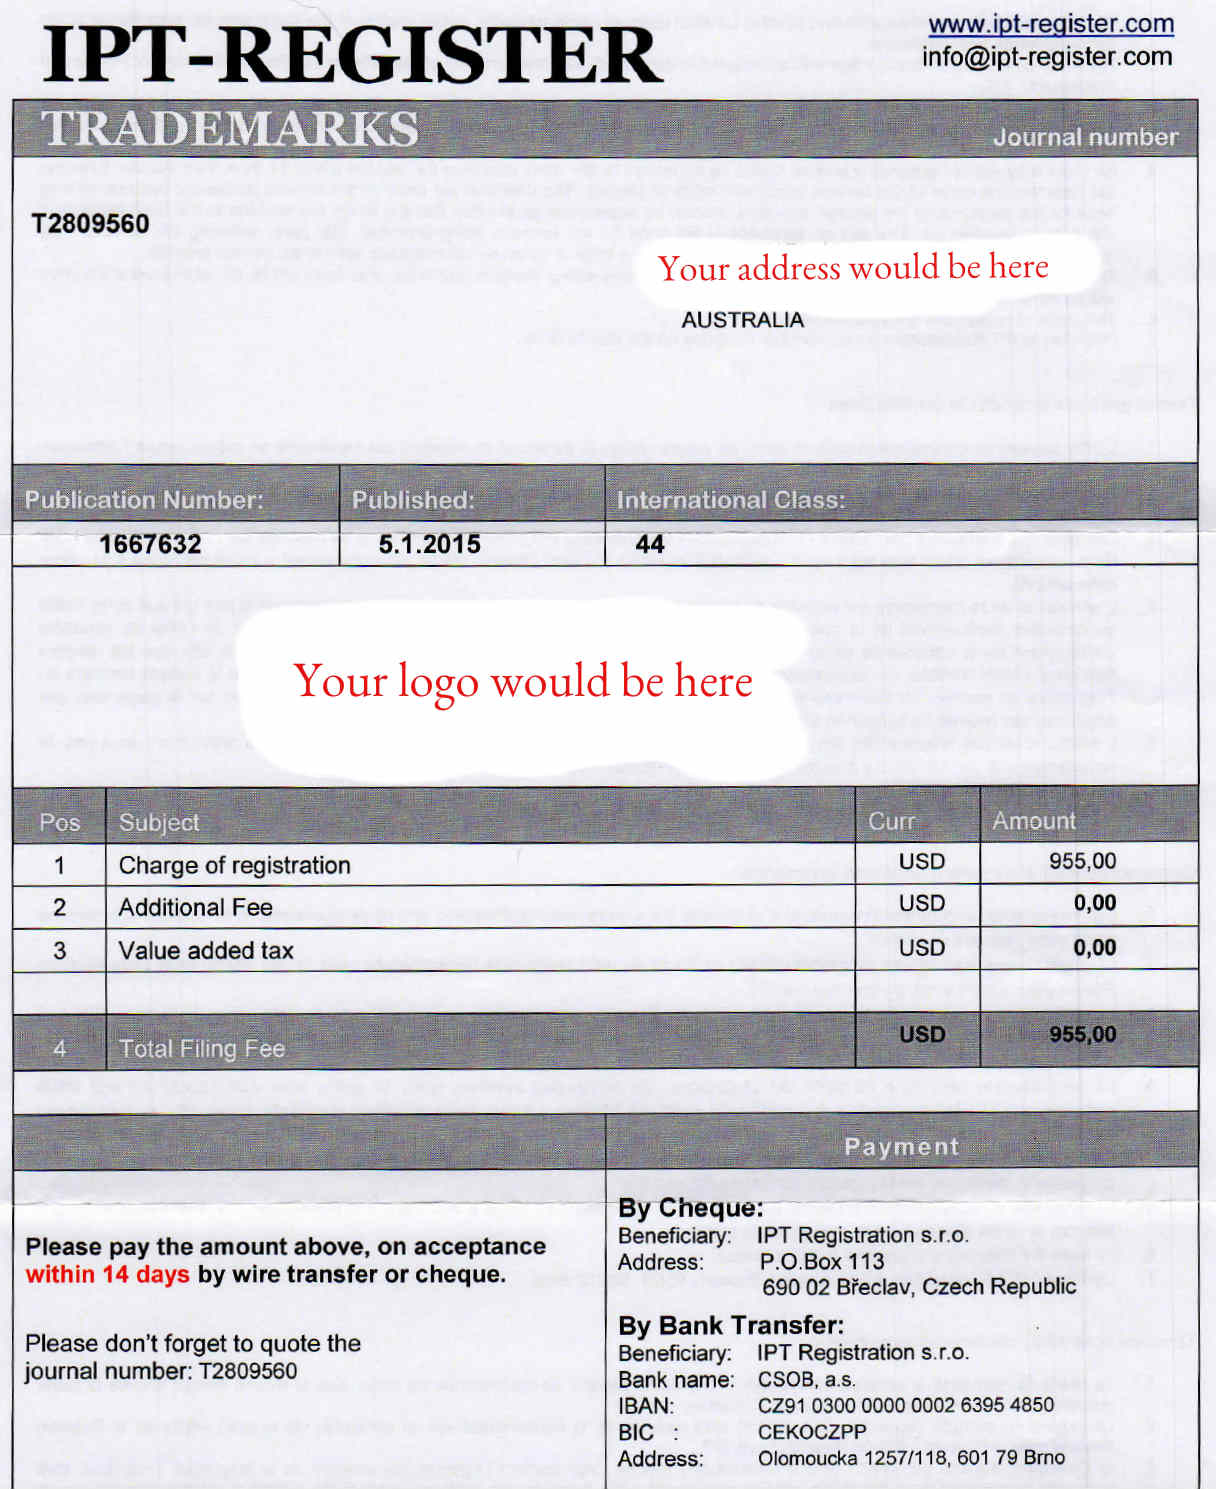 image of trademark registration scam example